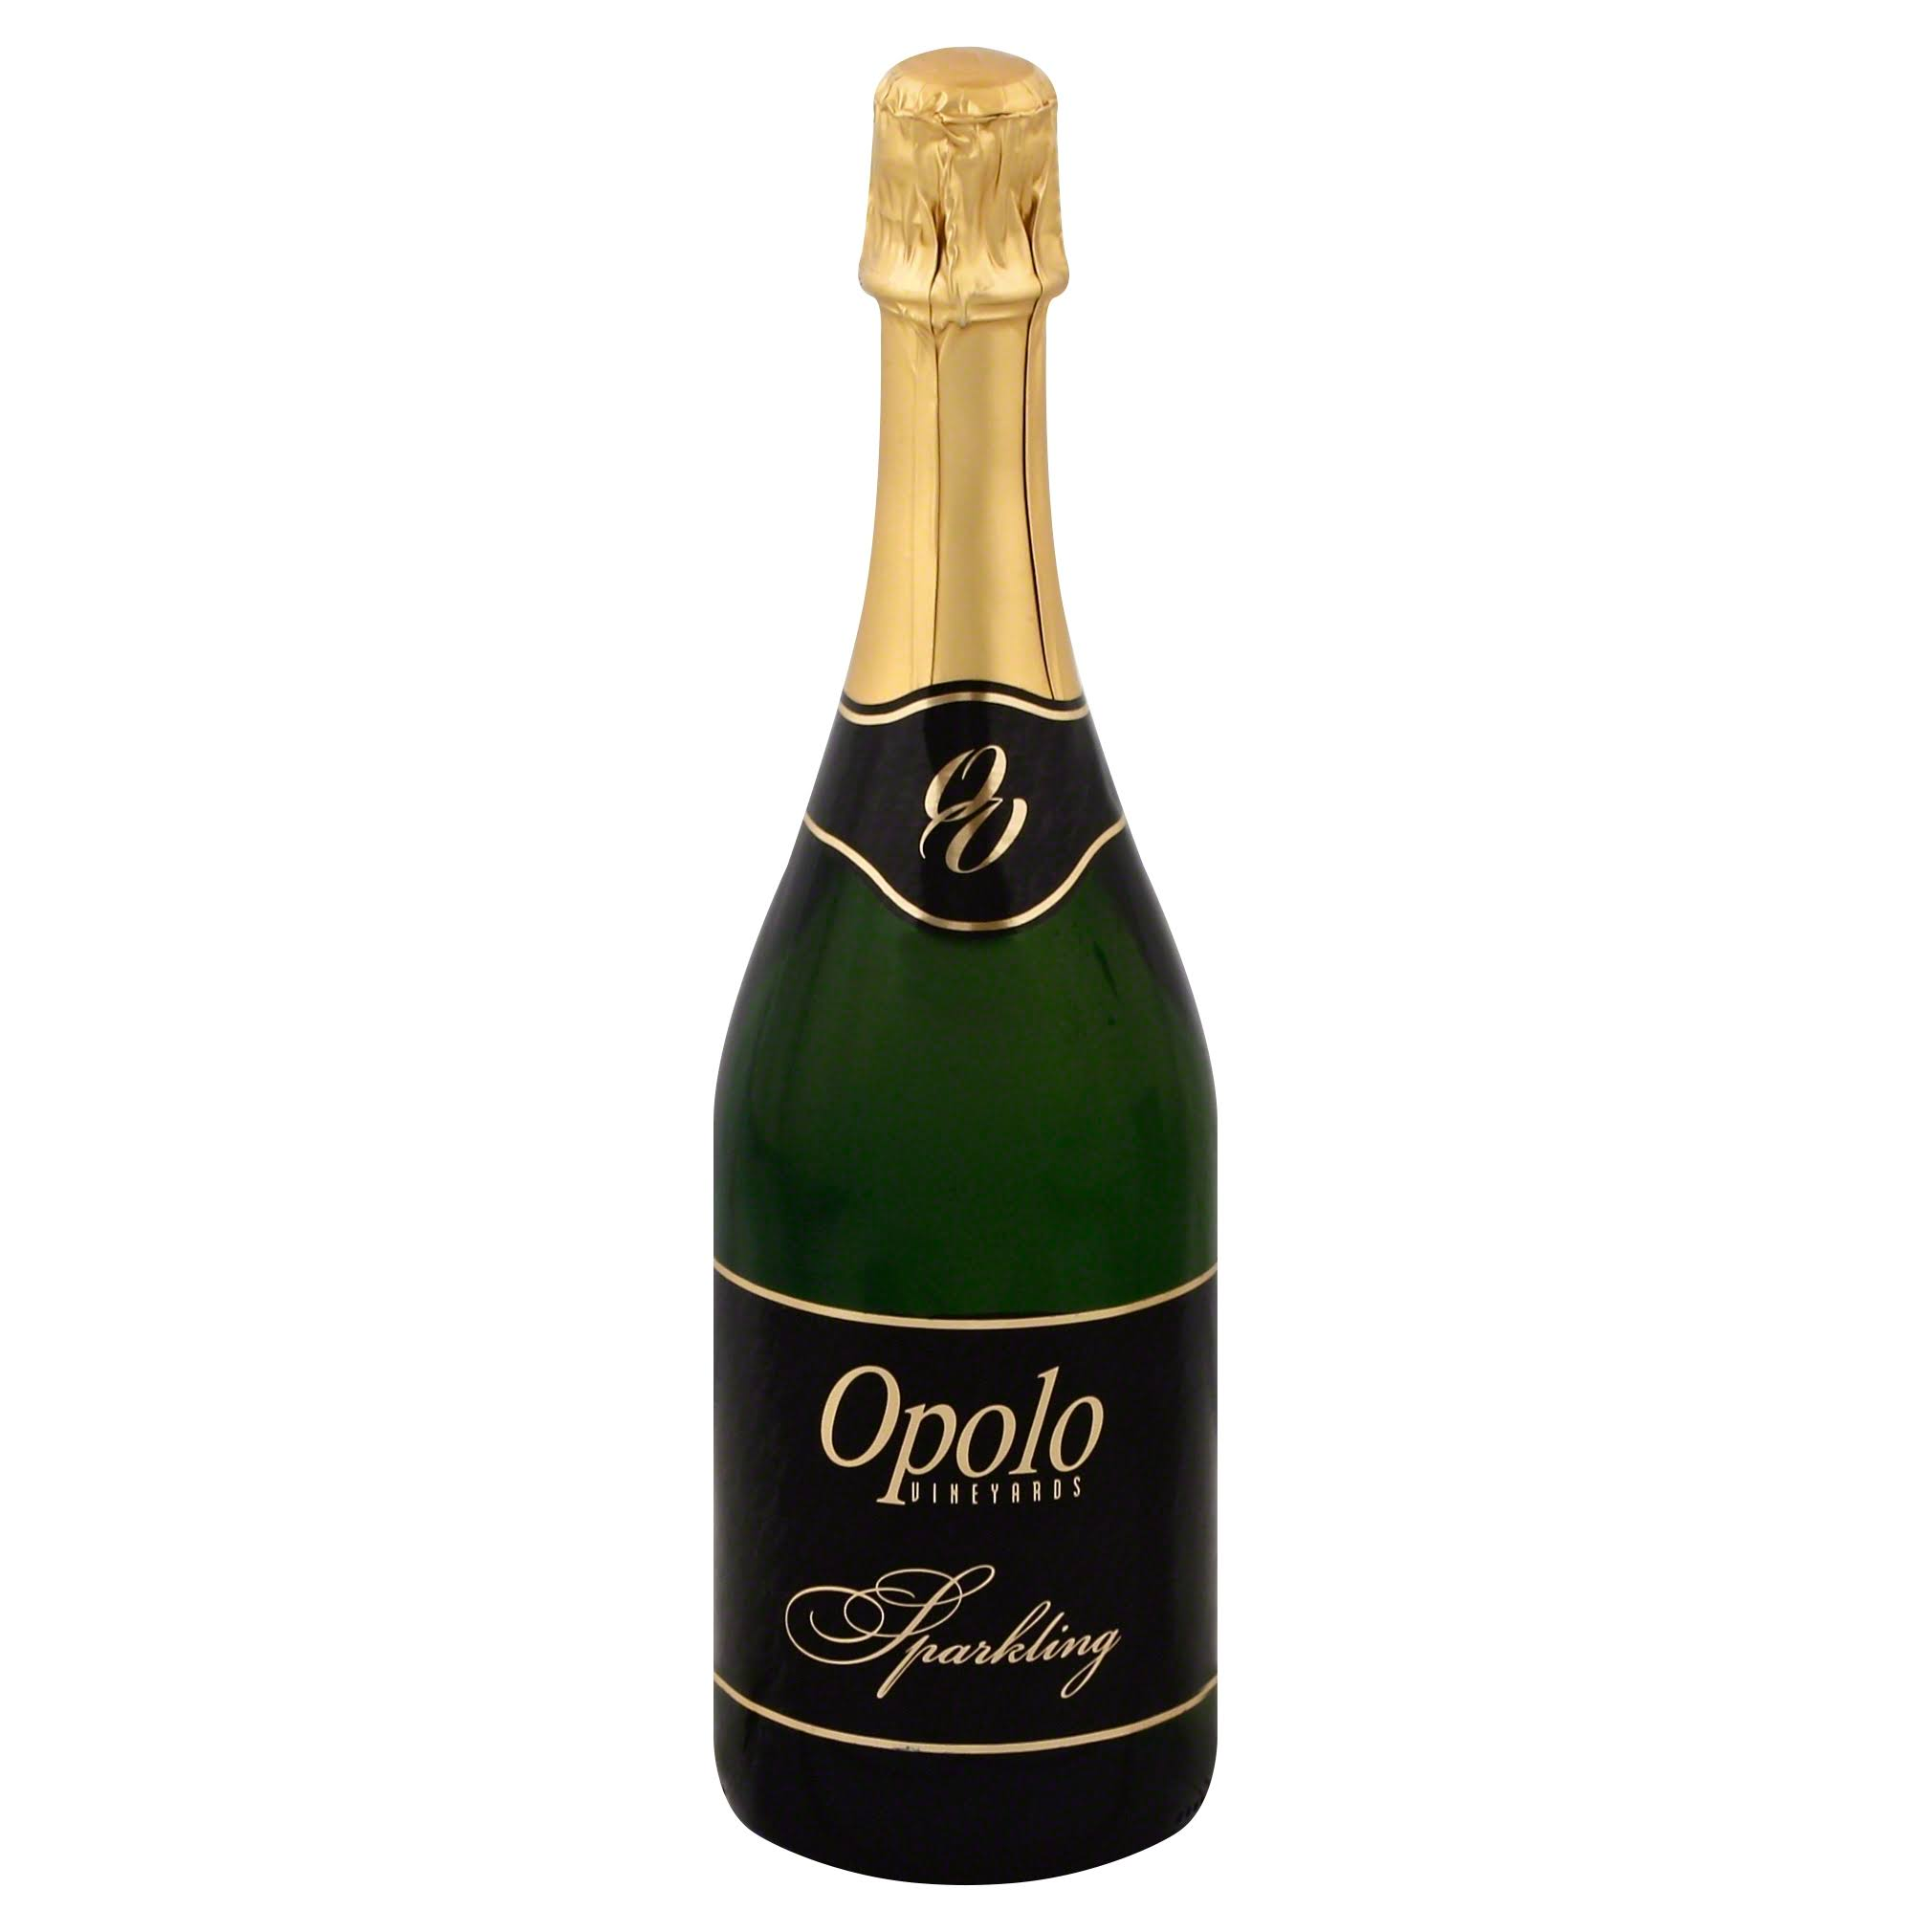 Opolo Vineyards Sparkling Wine, California - 750 ml